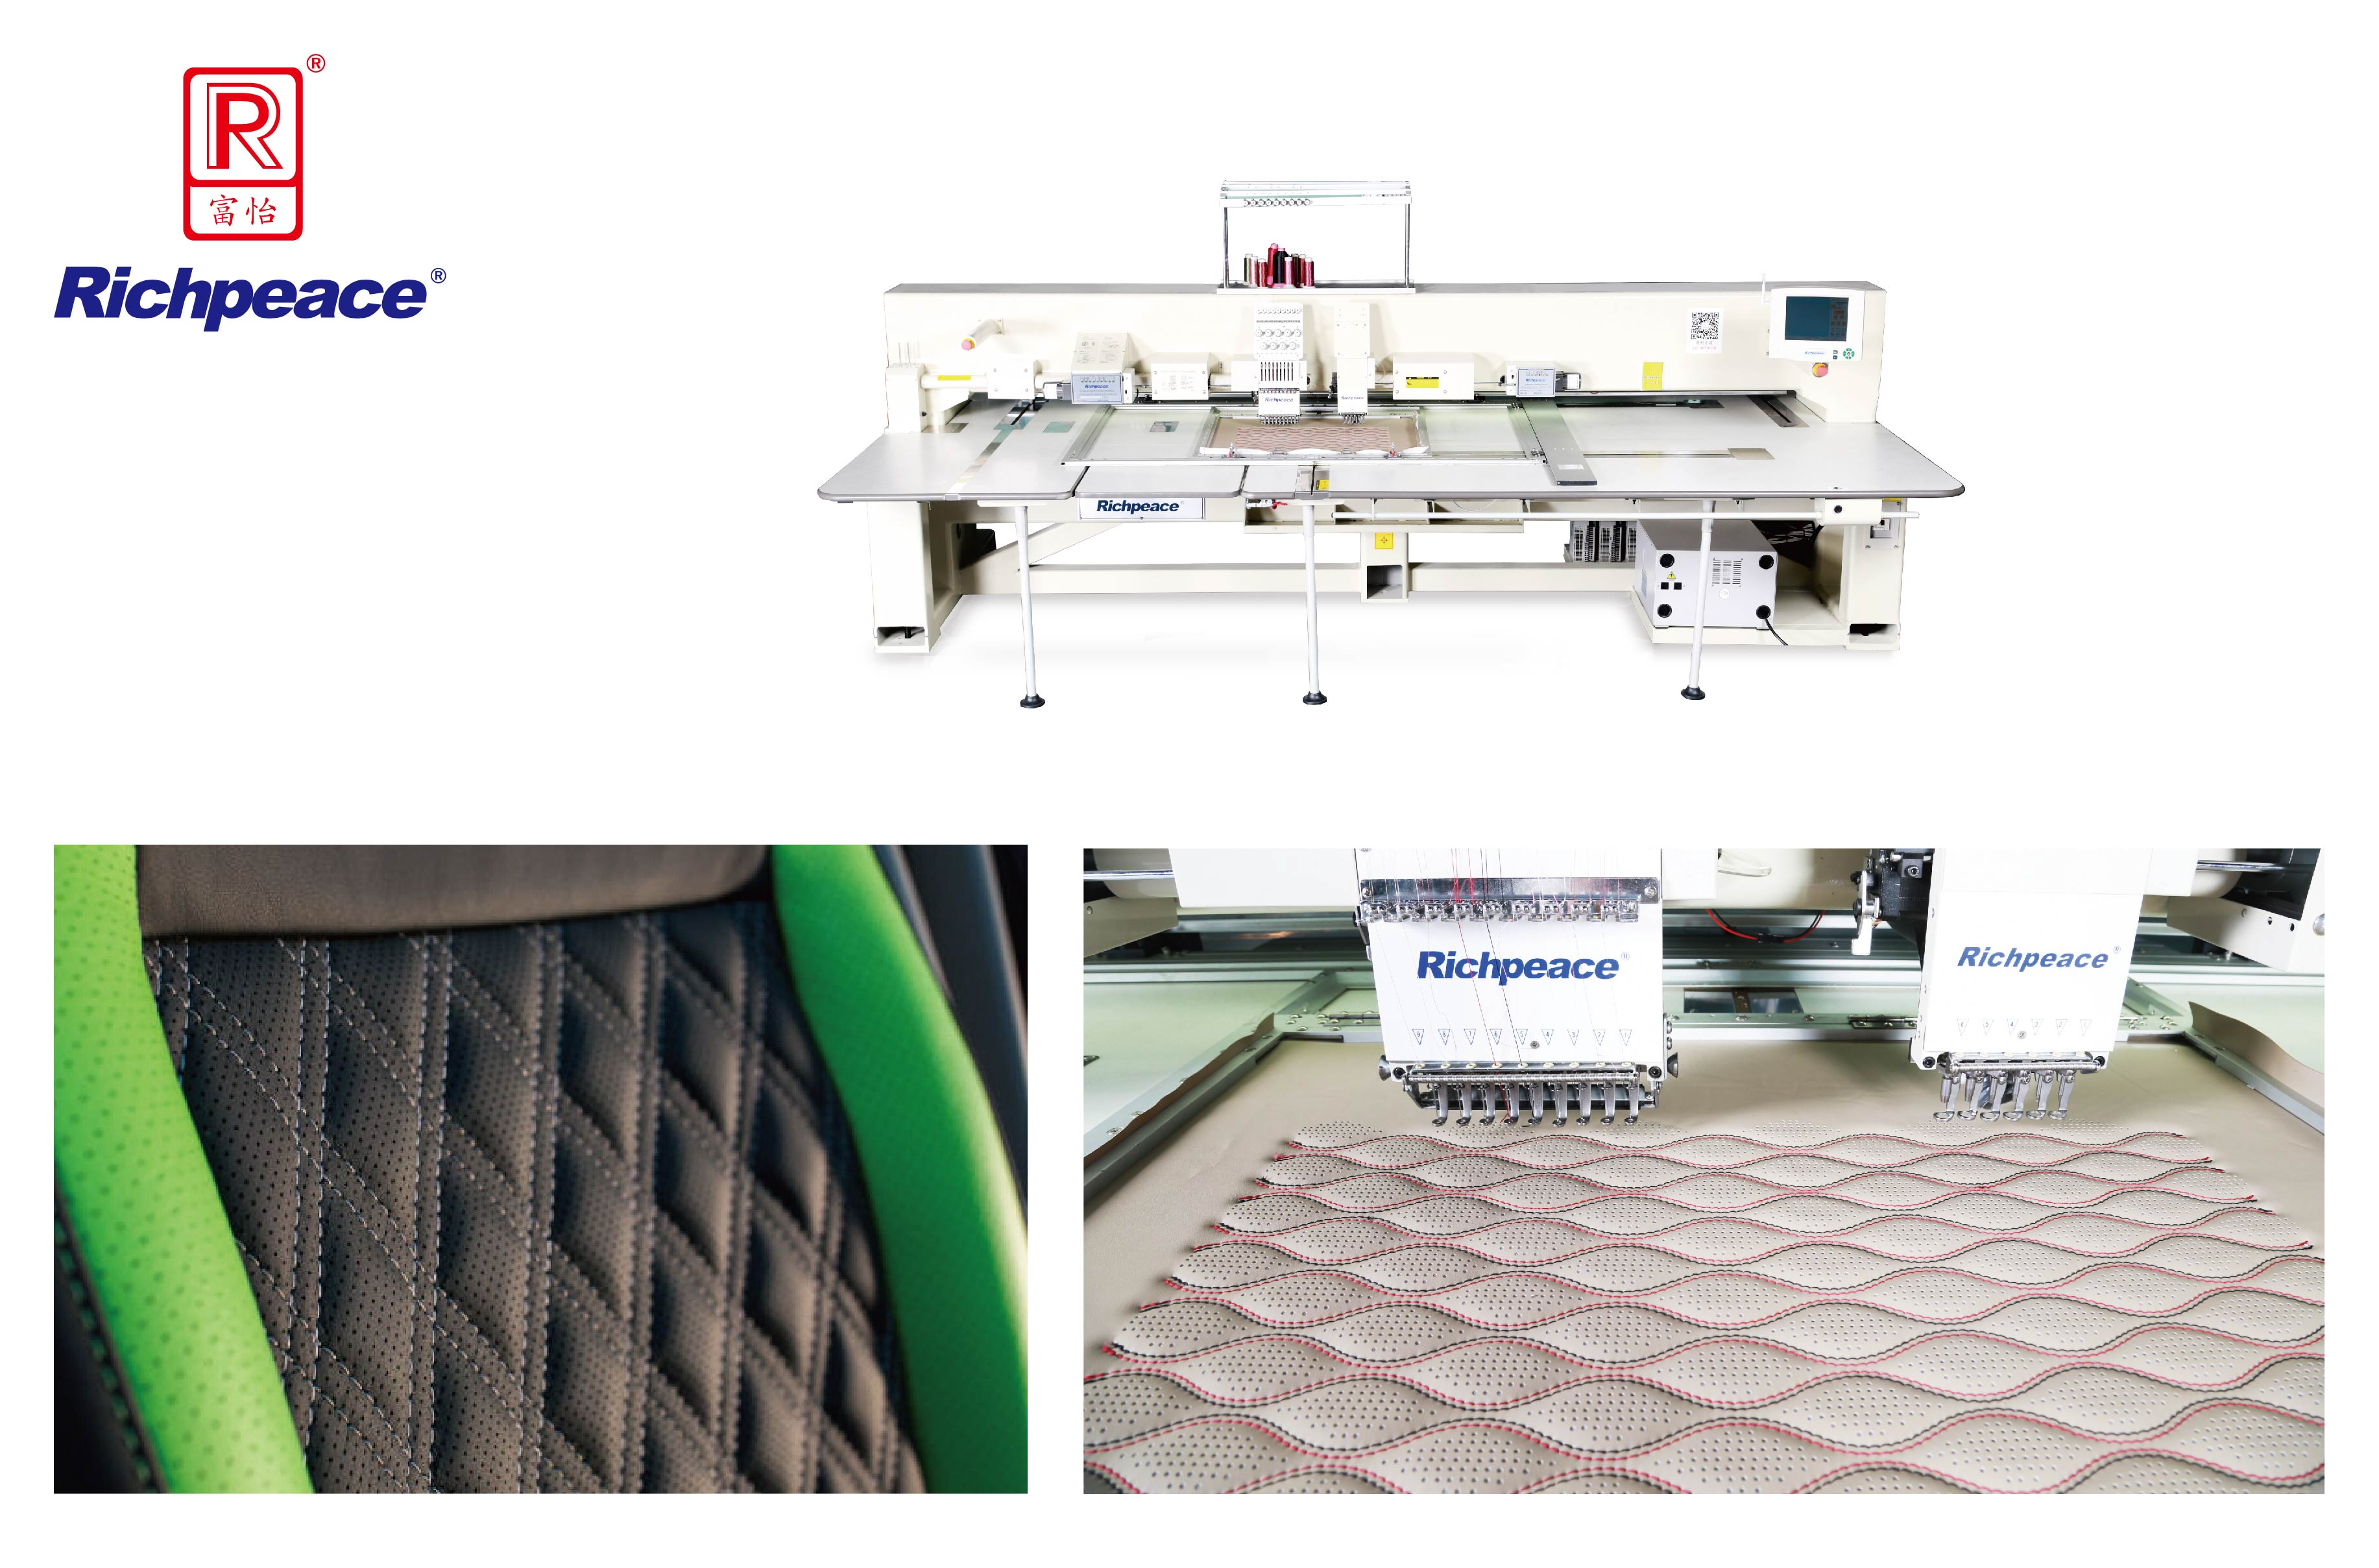 Richpeace Computerized Perforation and Embroidery Machine